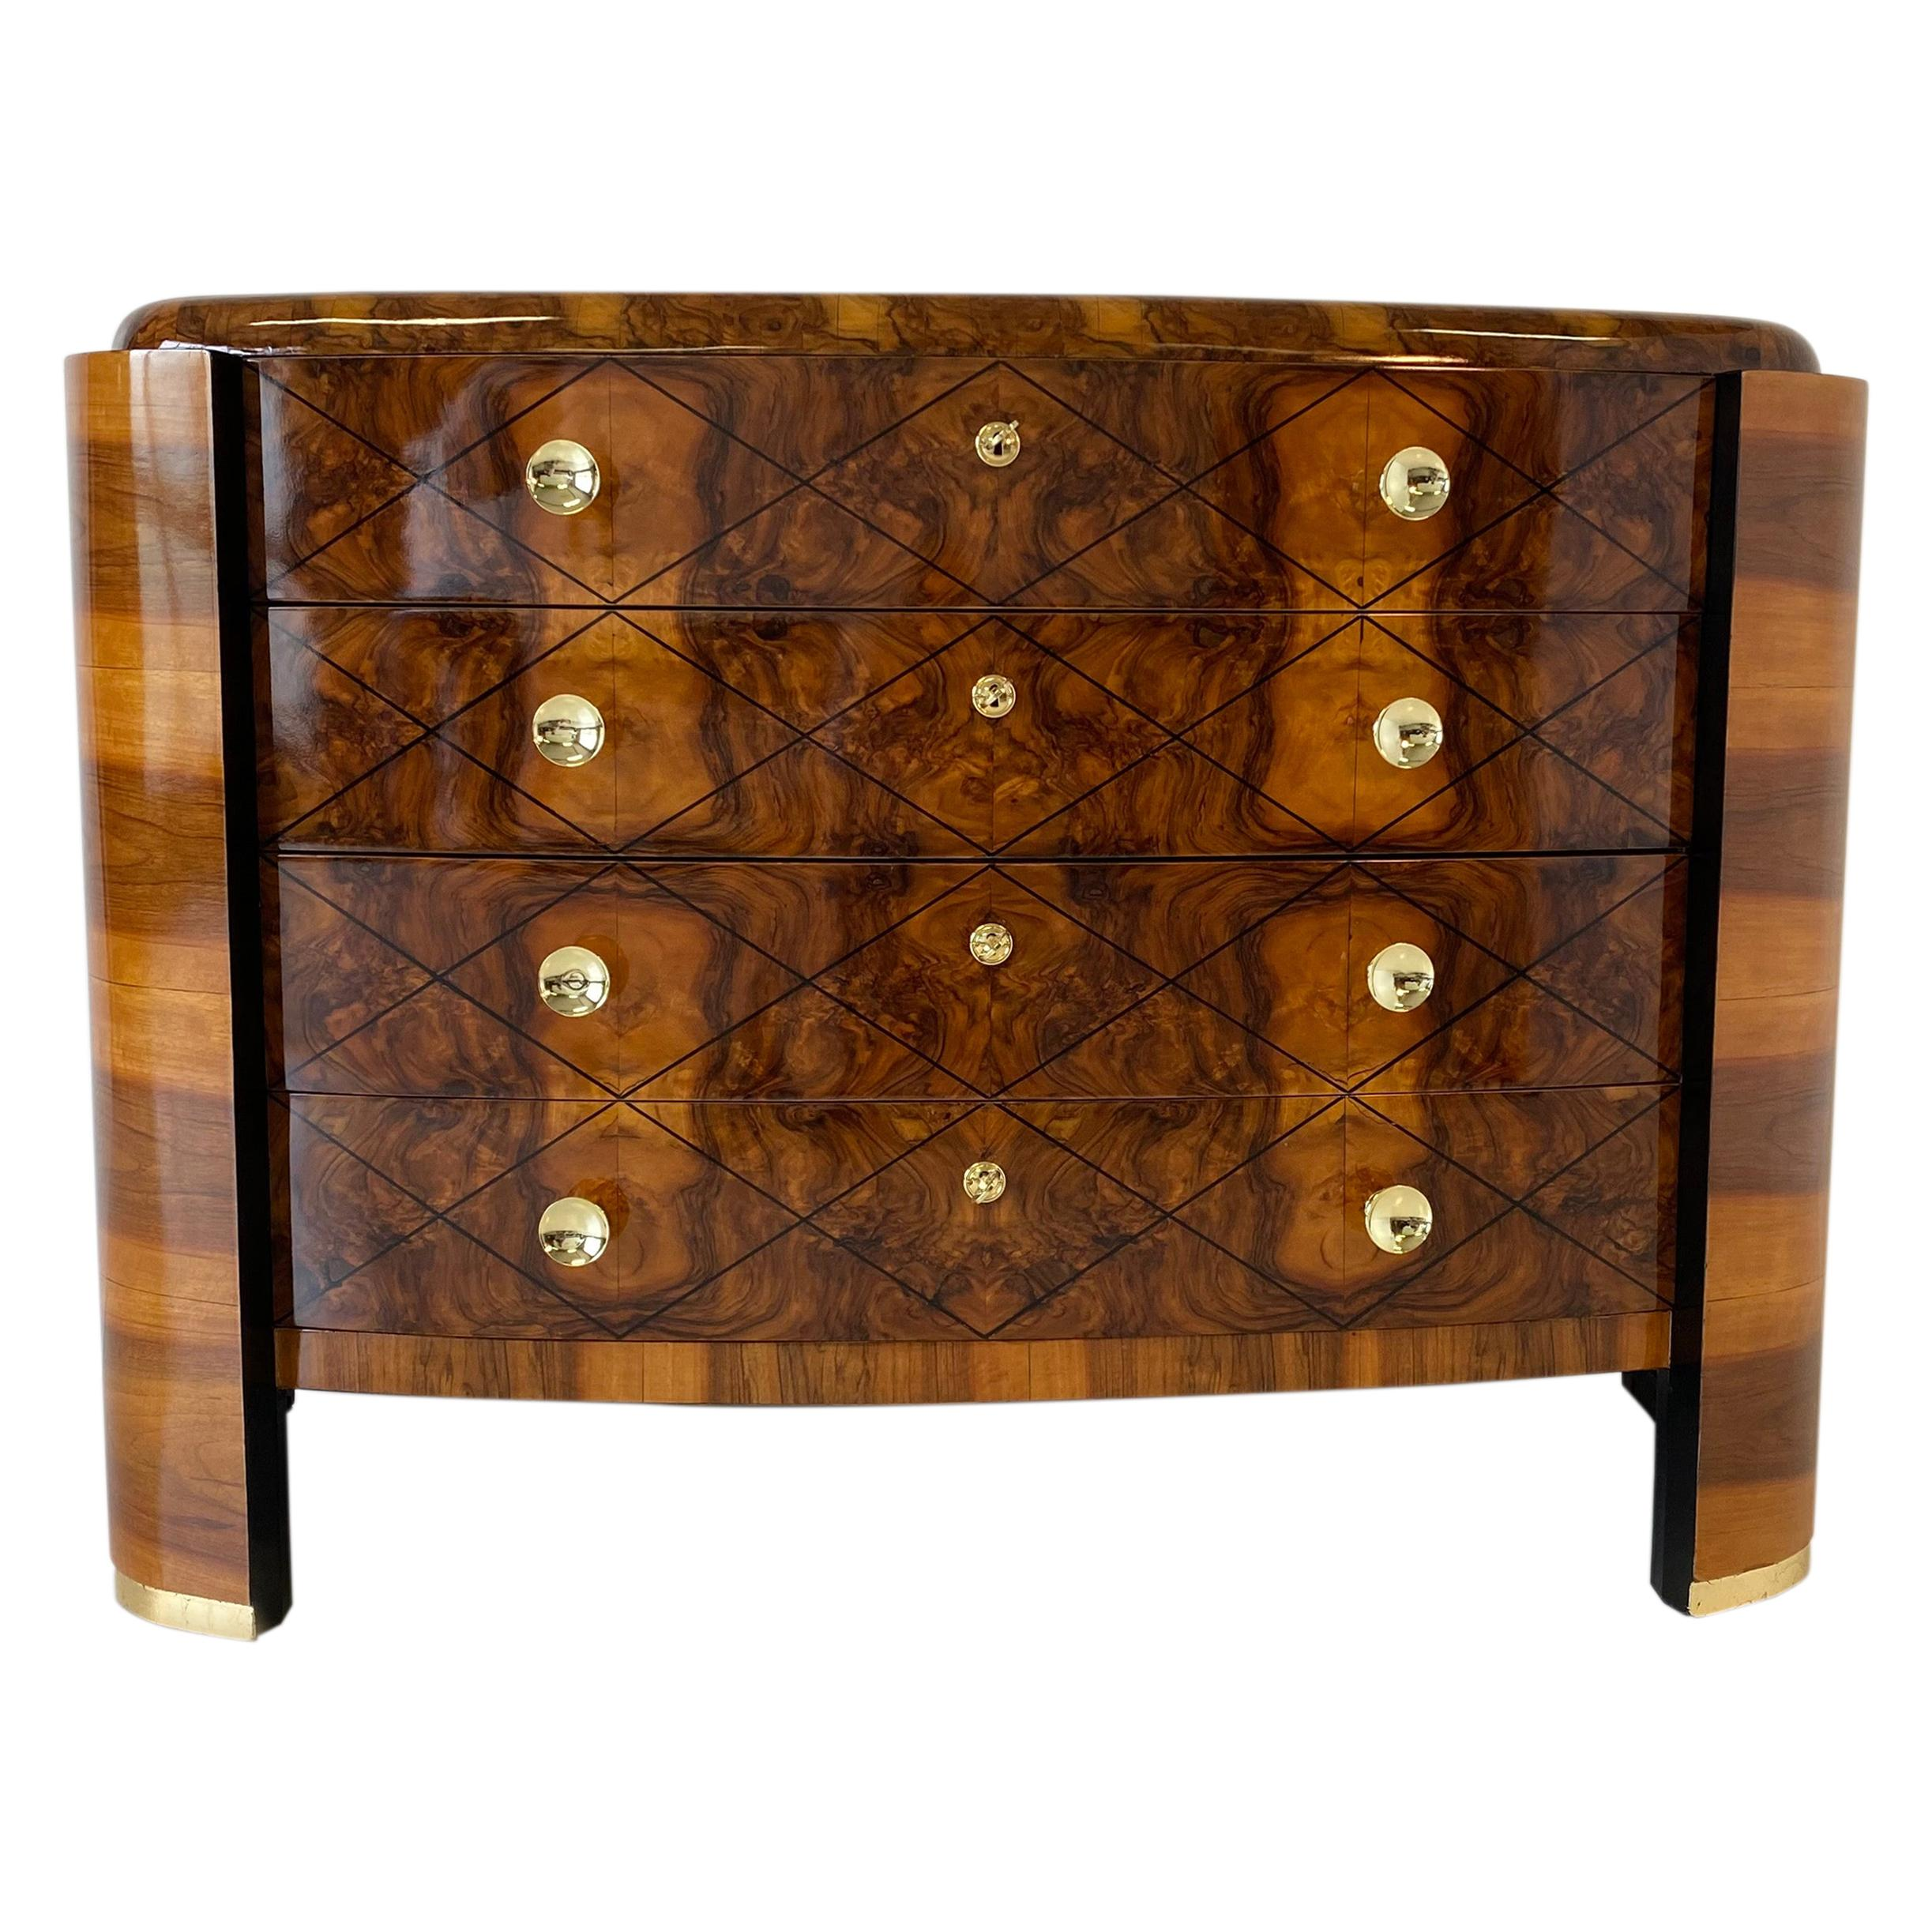 Italian Art Deco Walnut ,Gold Leaf and Brass Chest of Drawers, 1930s